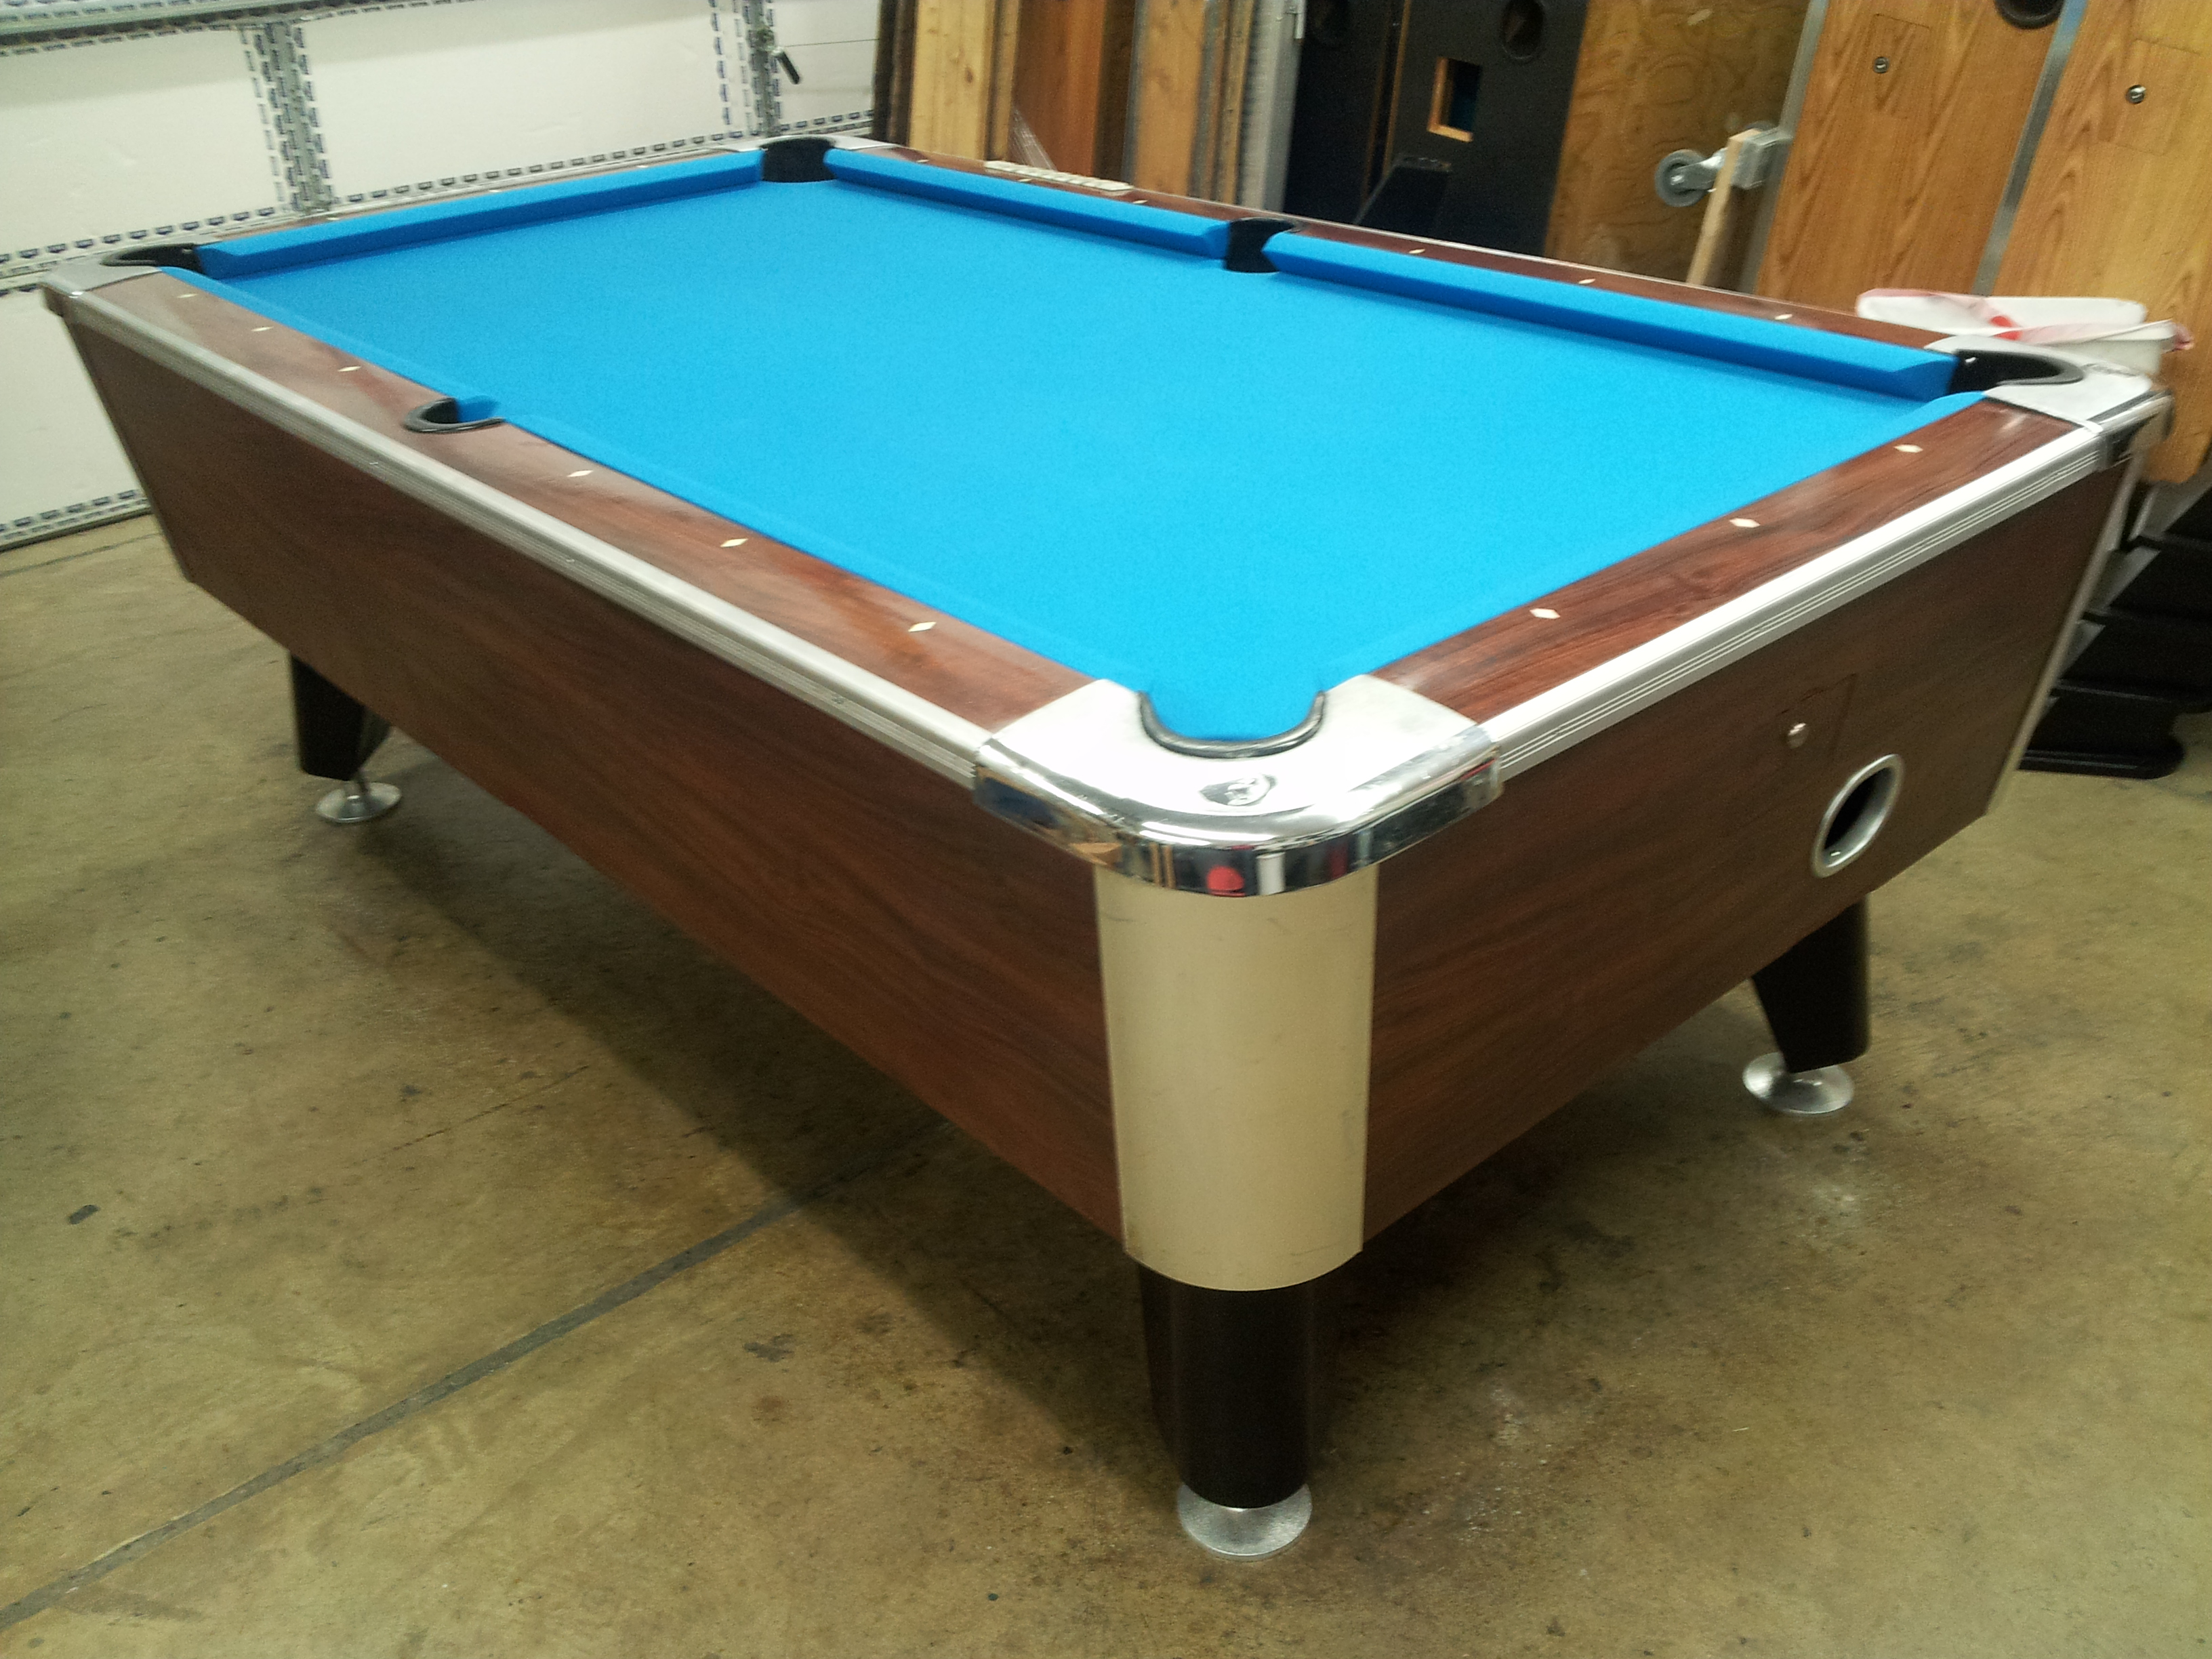 Who Makes This Pool Table With Lights Under The Cushions - Pool table identification